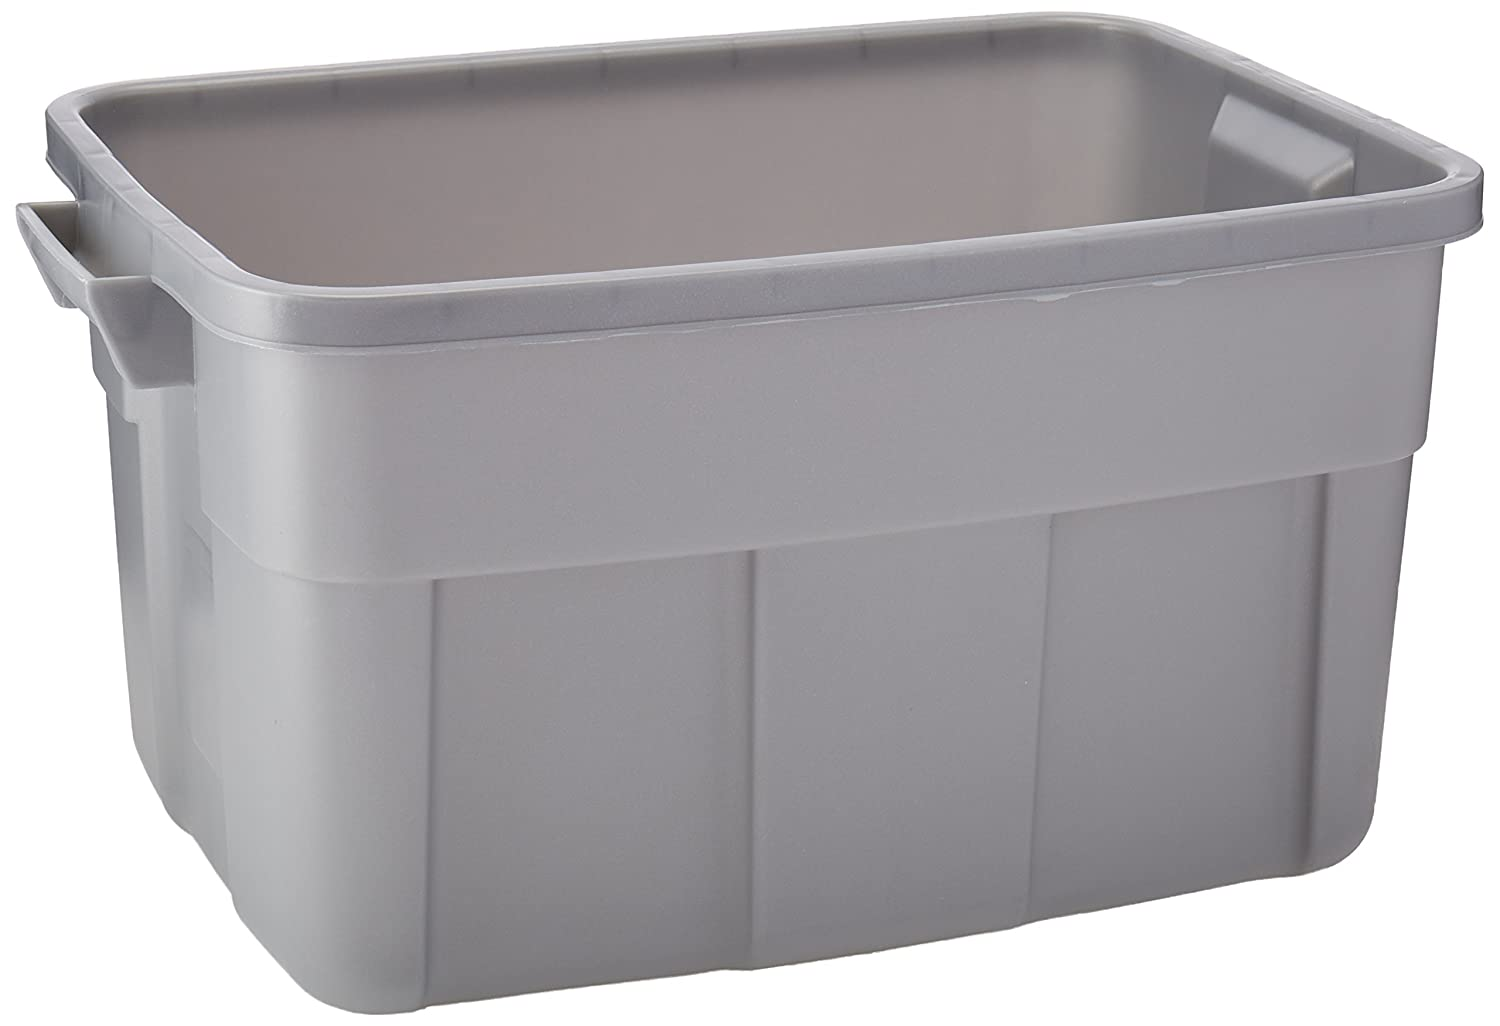 gallon tub great bin storage deals organizer totes spearmint medium tote vick of rubbermaid s sterilite case tubs products